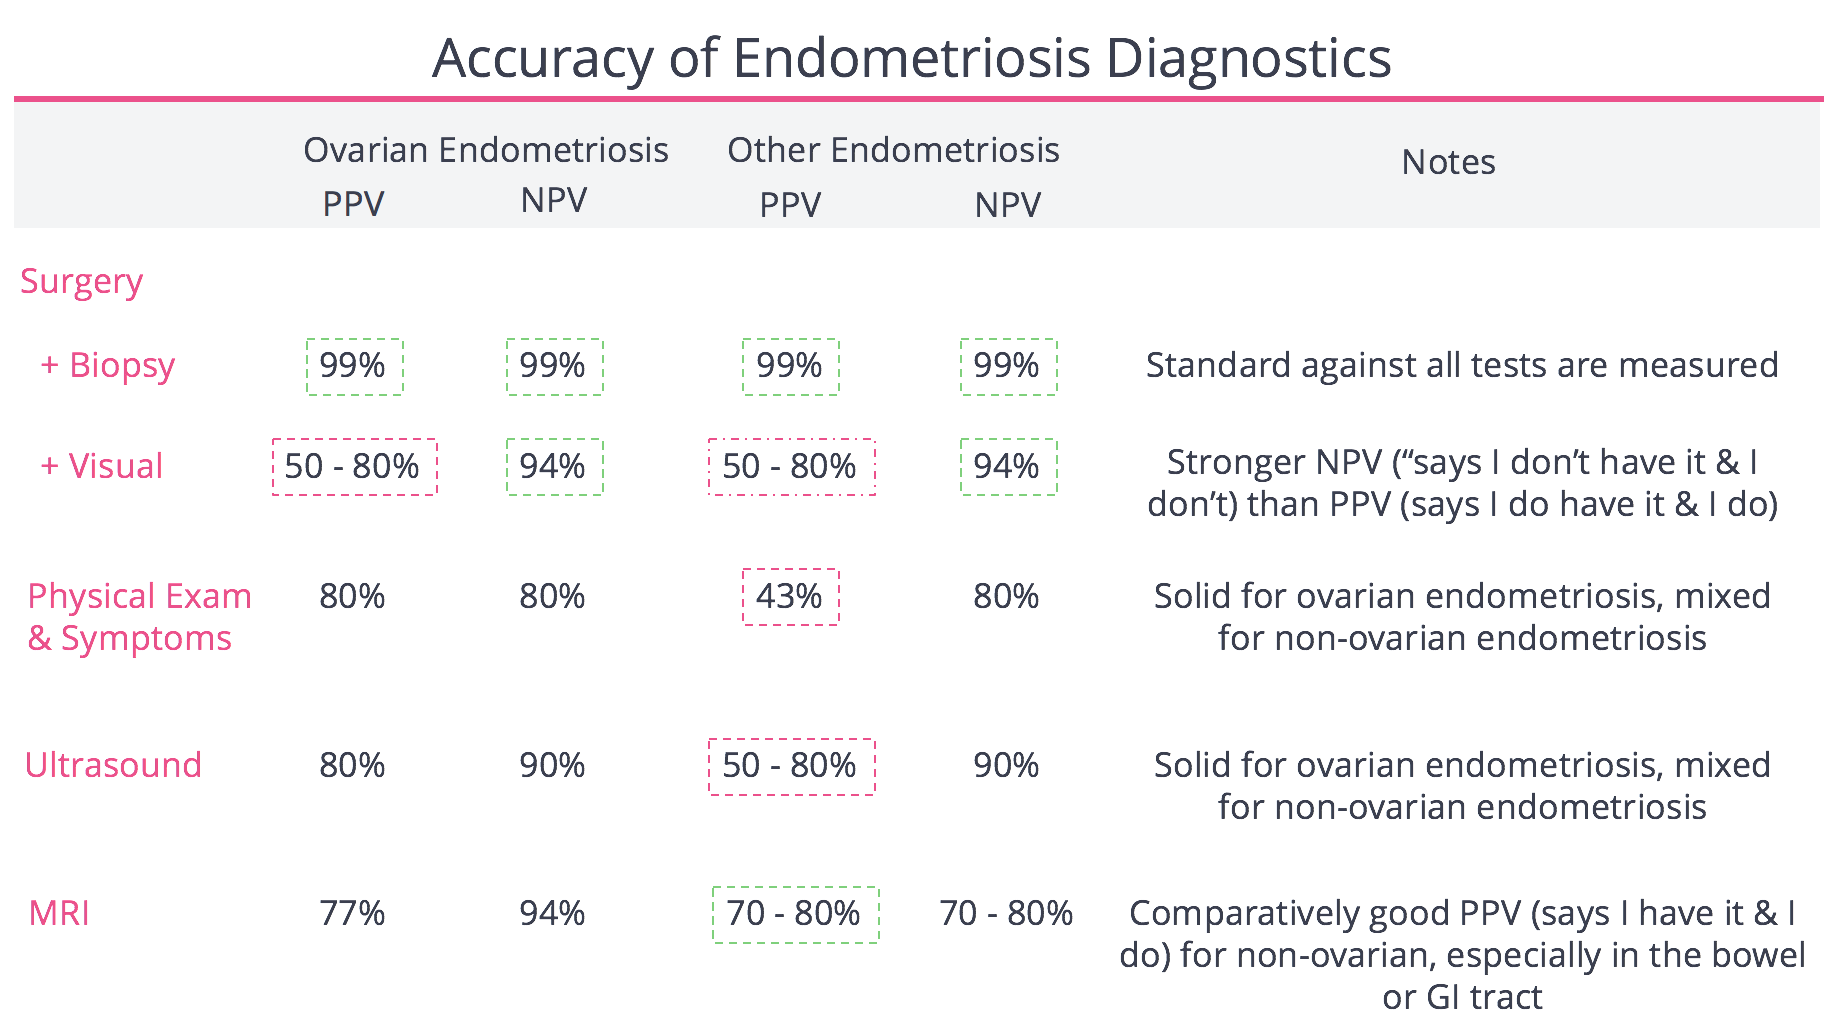 Accuracy of Endometriosis Diagnostic Tests